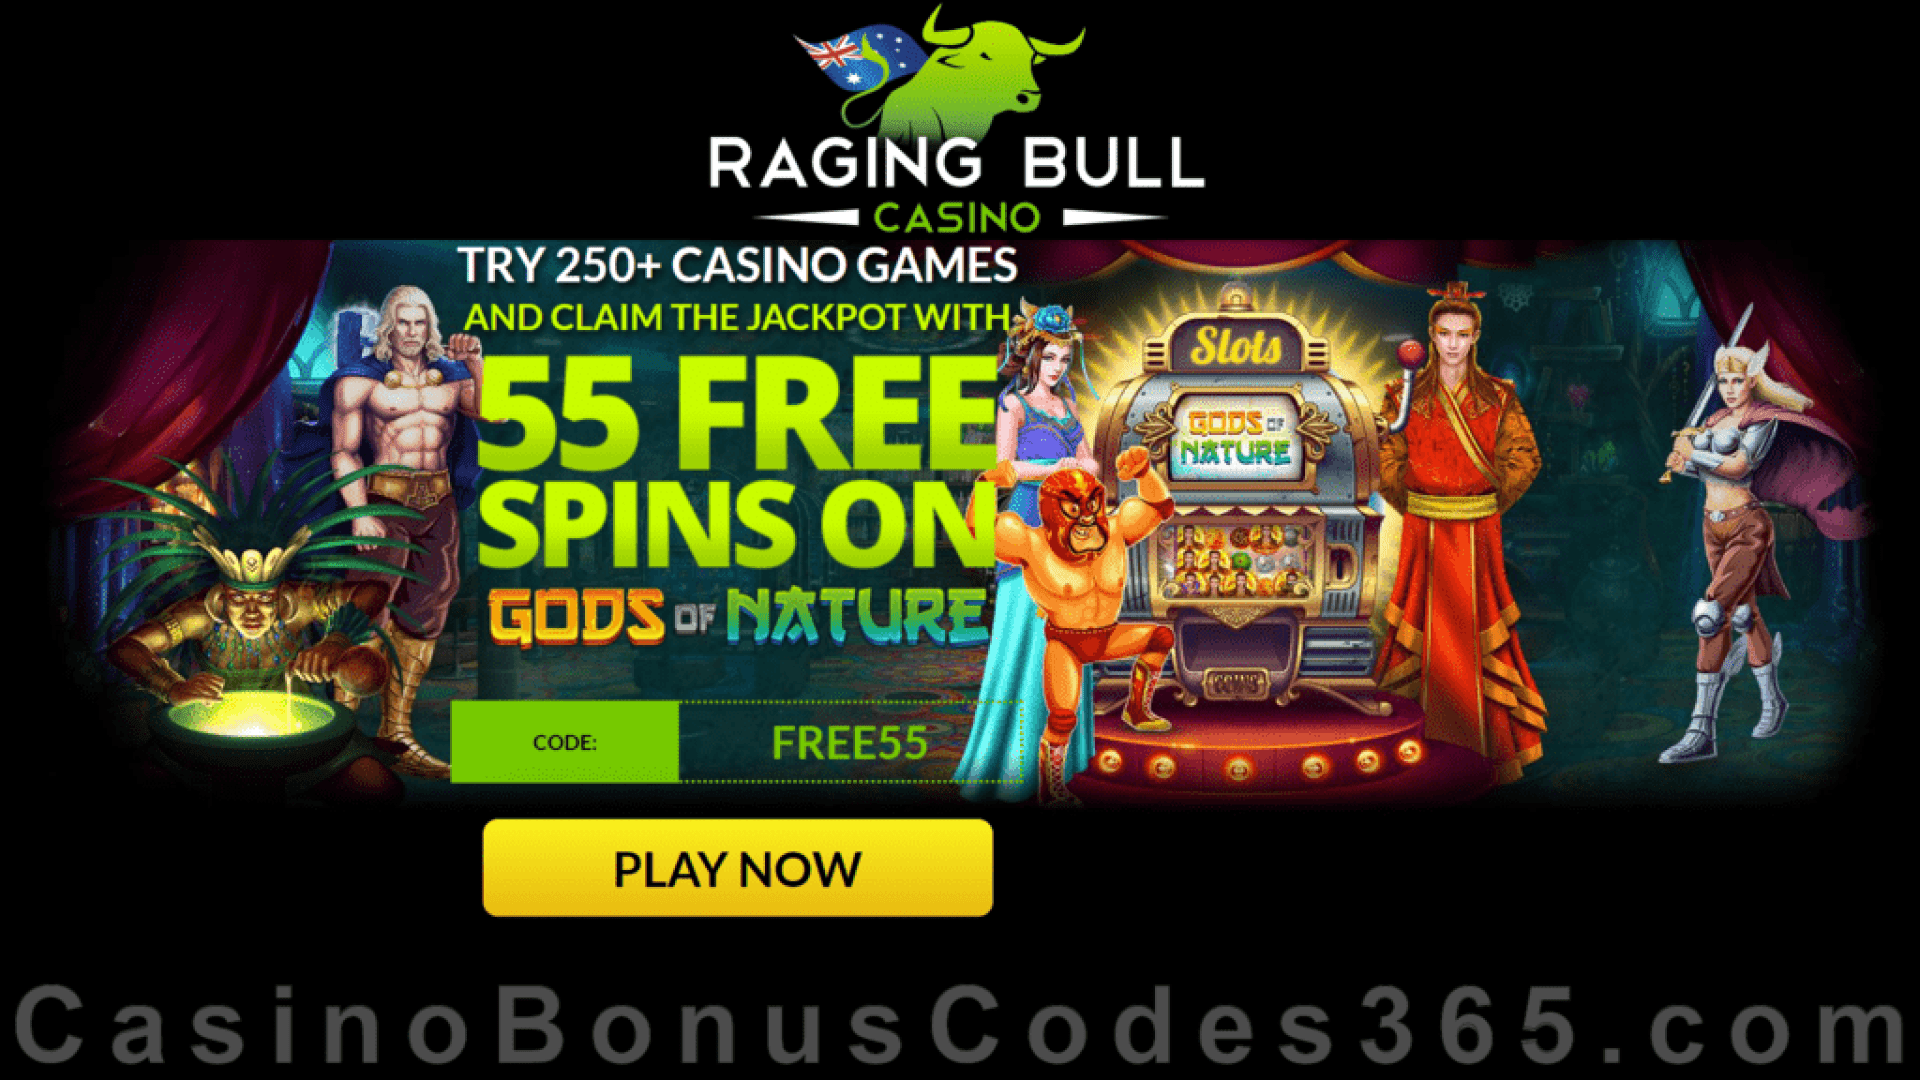 Raging Bull Casino AUD 55 FREE Spins on RTG Gods of Nature Australia